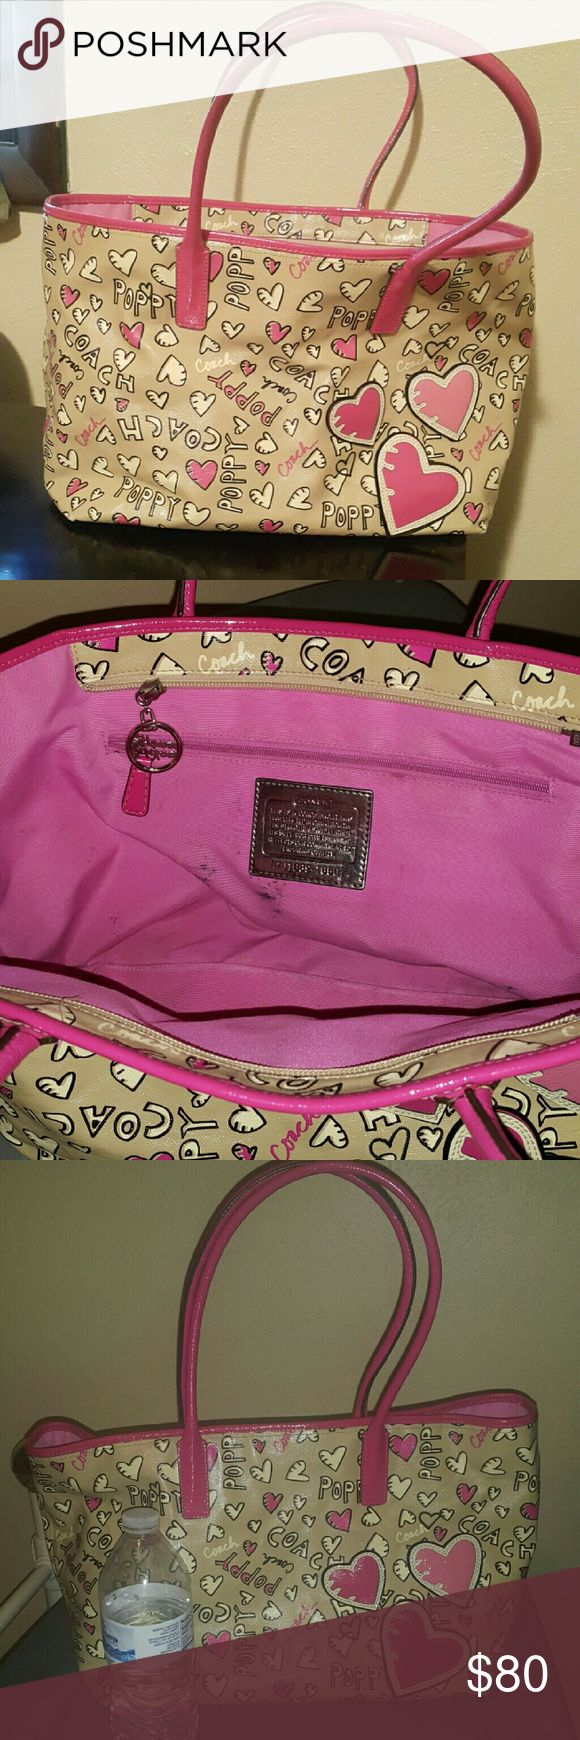 Coach poppy bag pink leather Authentic coach pink poppy handbag. Outside is in excellent flawless condition almost brand new, the inside liner has pen marks, I have not attempted to remove them so may come out with stain remover. Photo with water bottle gives an idea of size. Strap is wide enough  to carry as a shoulder bag or satchel purse. Coach Bags Shoulder Bags